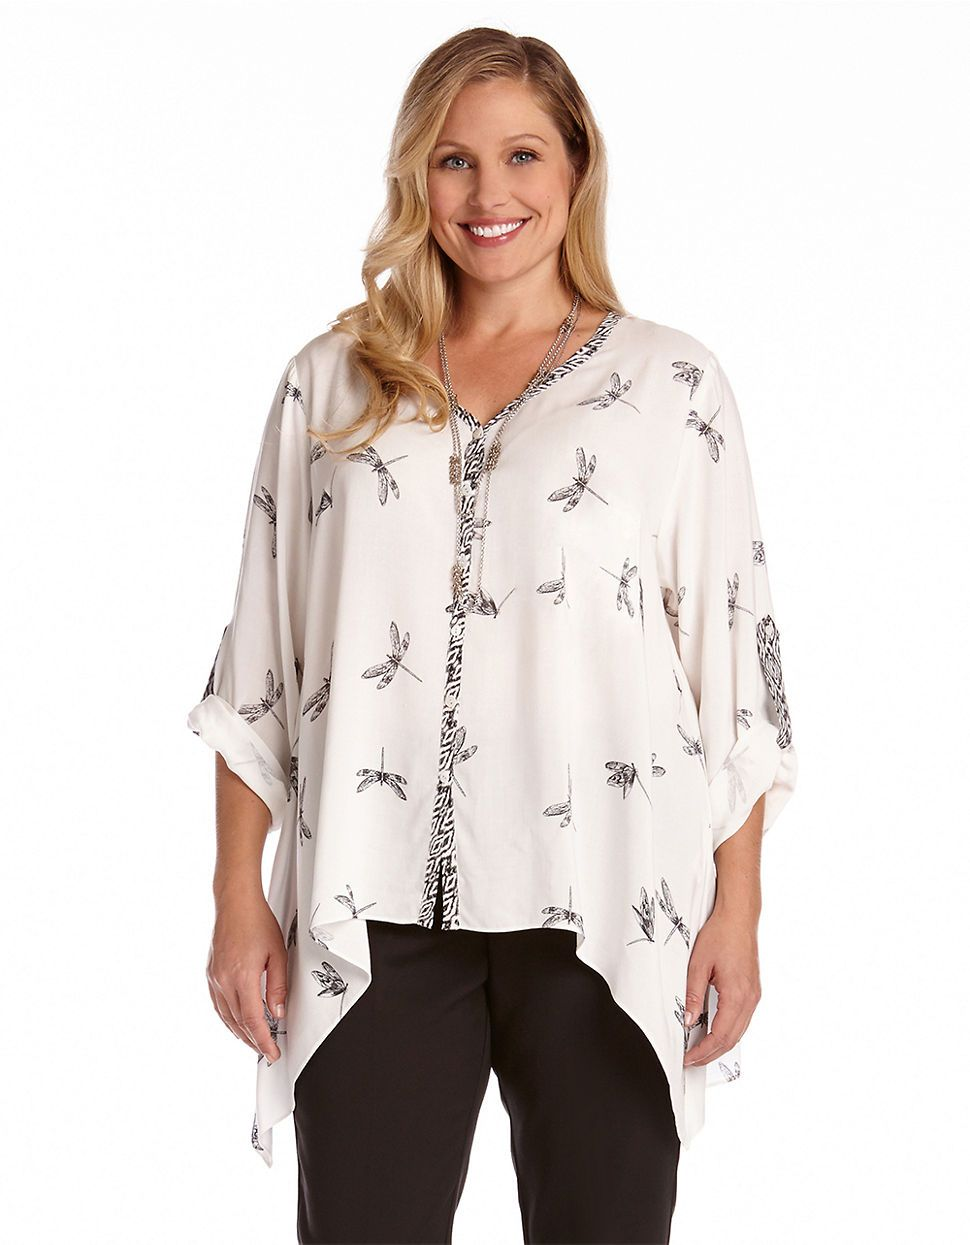 KAREN KANE WOMENS Plus Size Clothing at Lord and Taylor ...